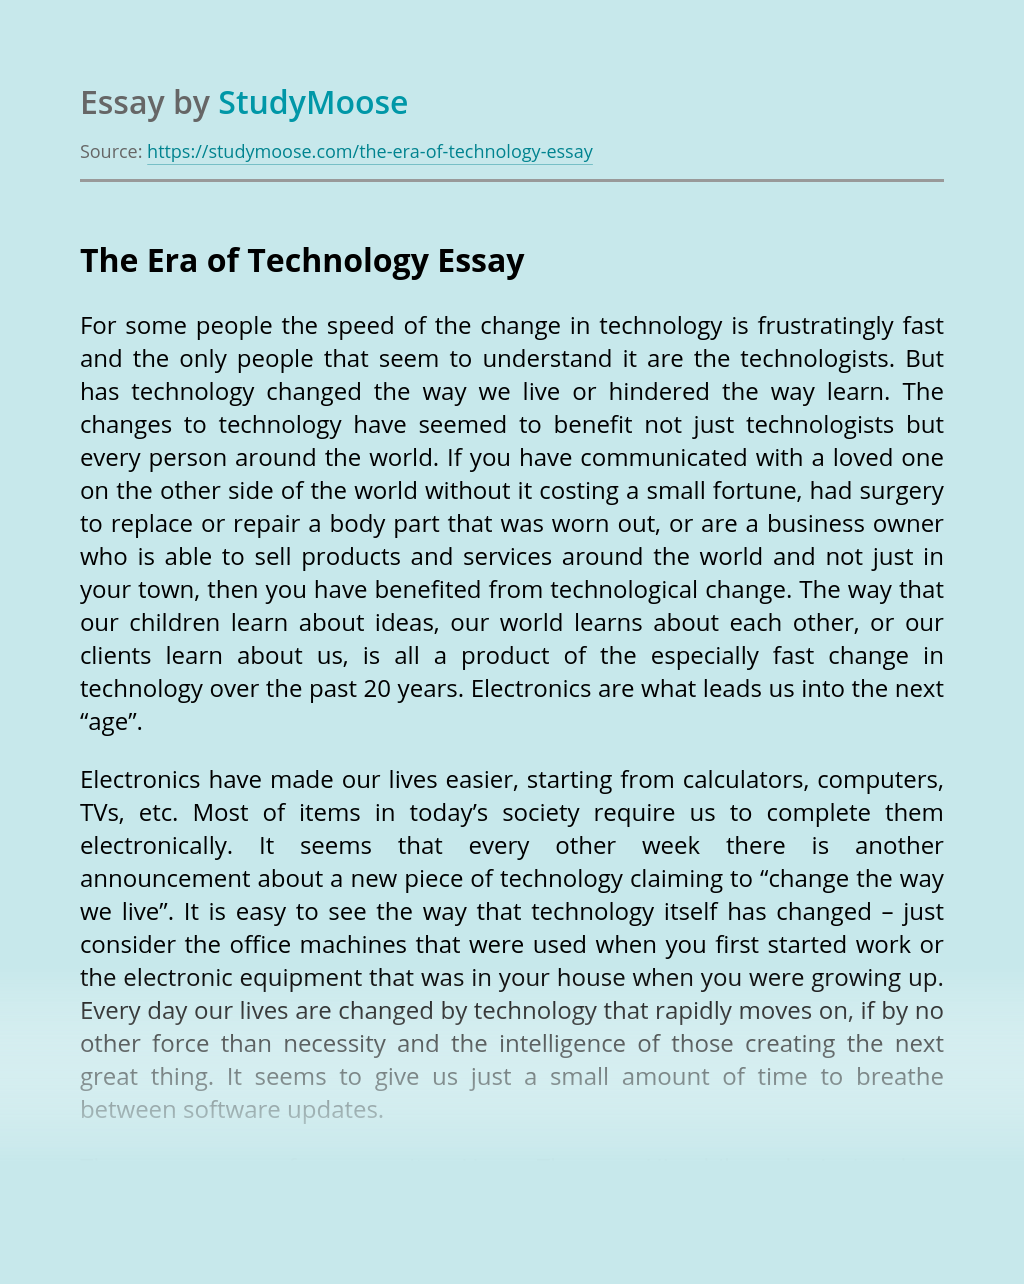 The Era of Technology